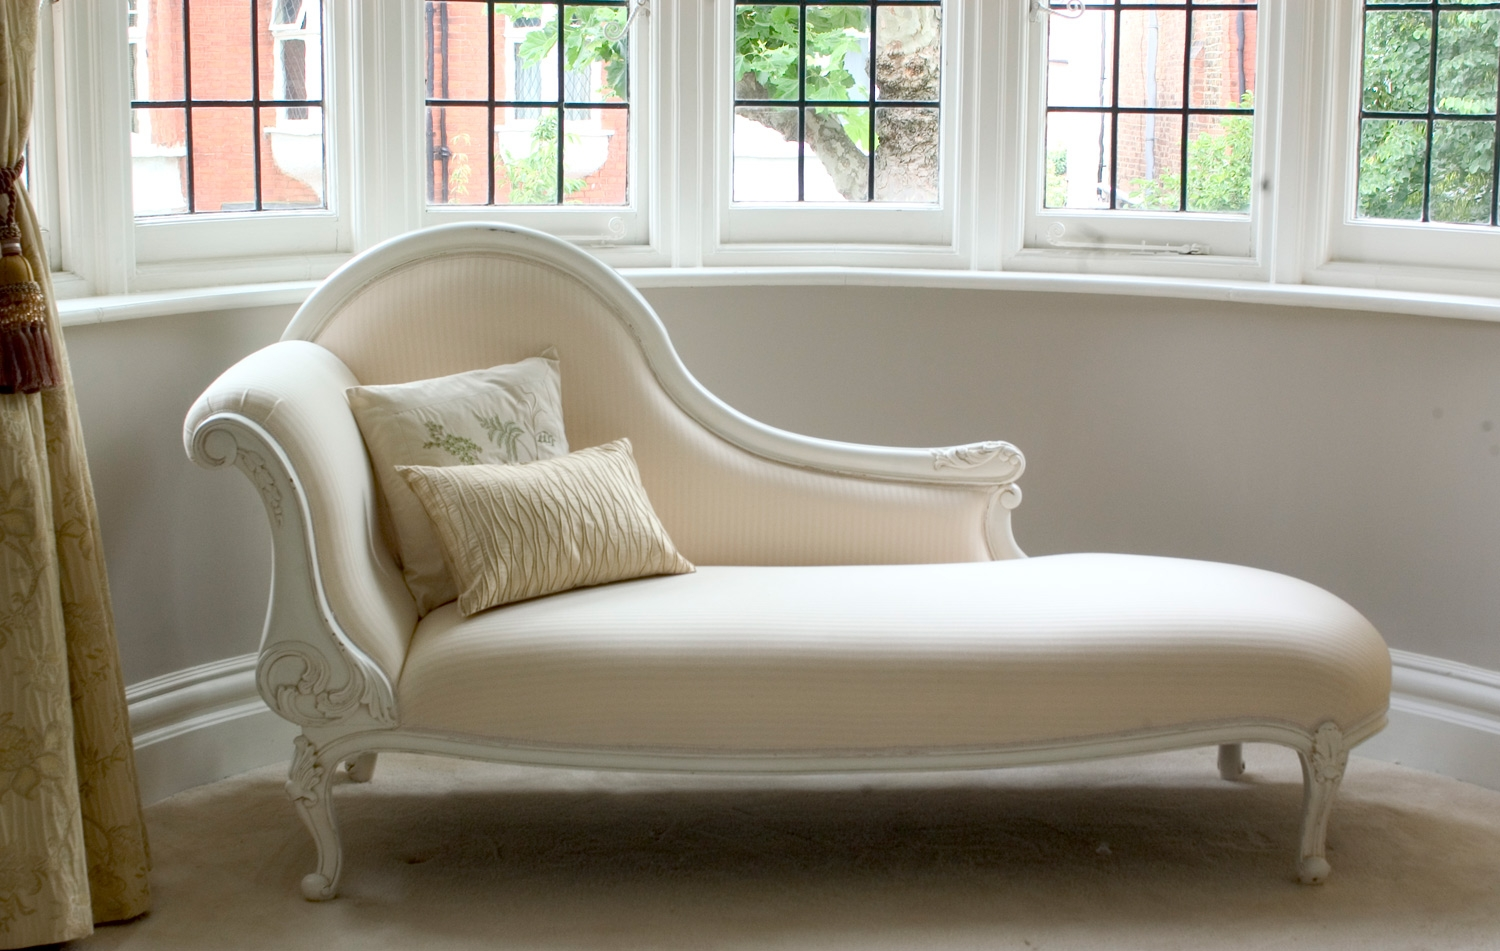 elegance of living chaise longue sofa designs. Black Bedroom Furniture Sets. Home Design Ideas